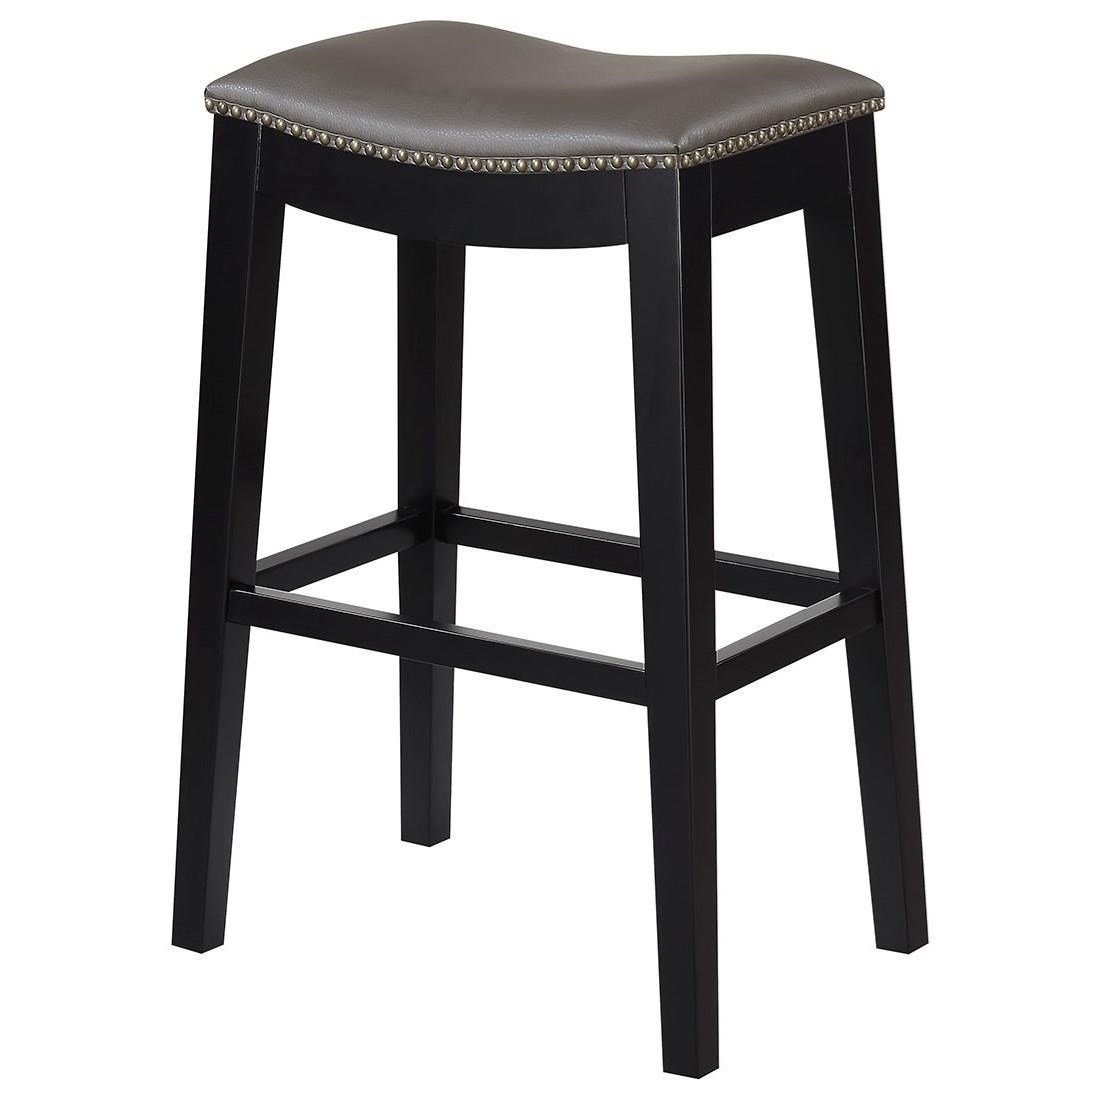 Briar 30'' Bar Stool  by Emerald at Suburban Furniture